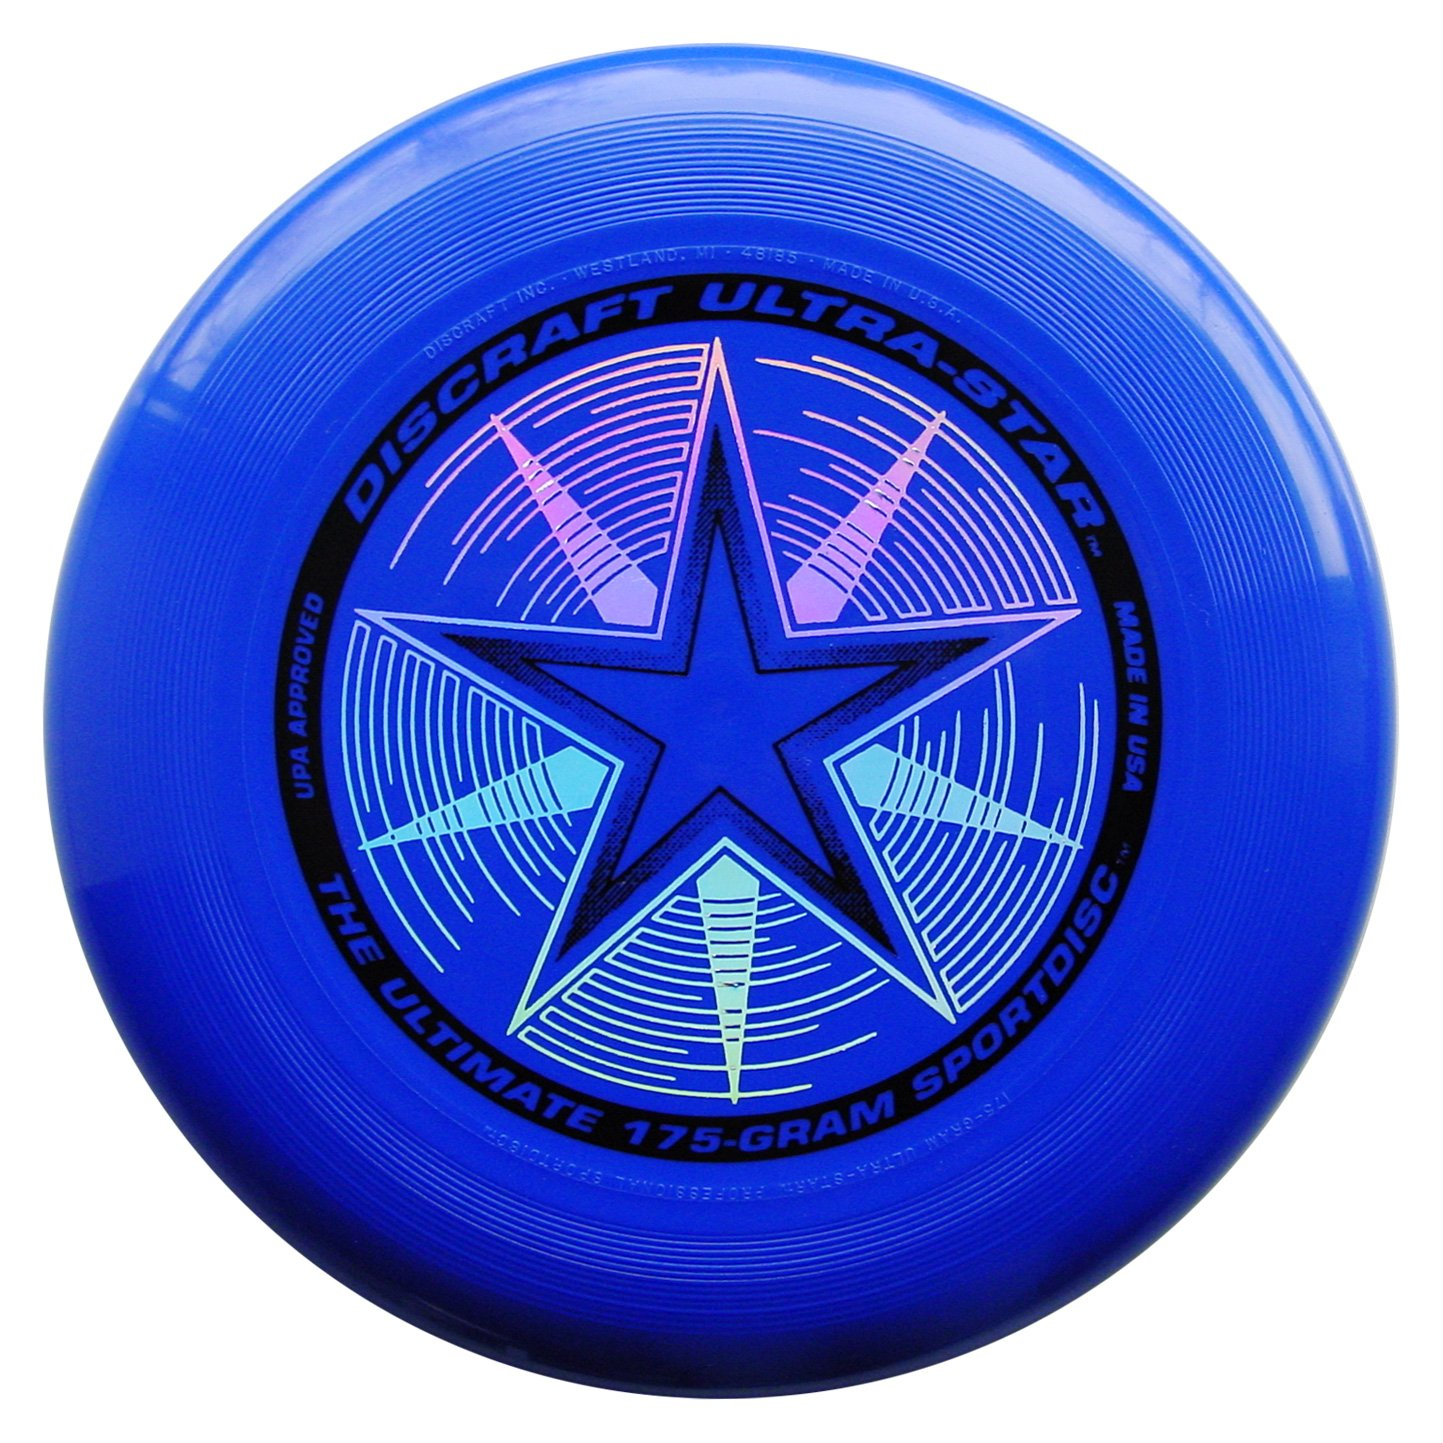 Discraft 175 gram Ultra Star Sport Disc, Royal Blue with Deluxe Packaging by Discraft